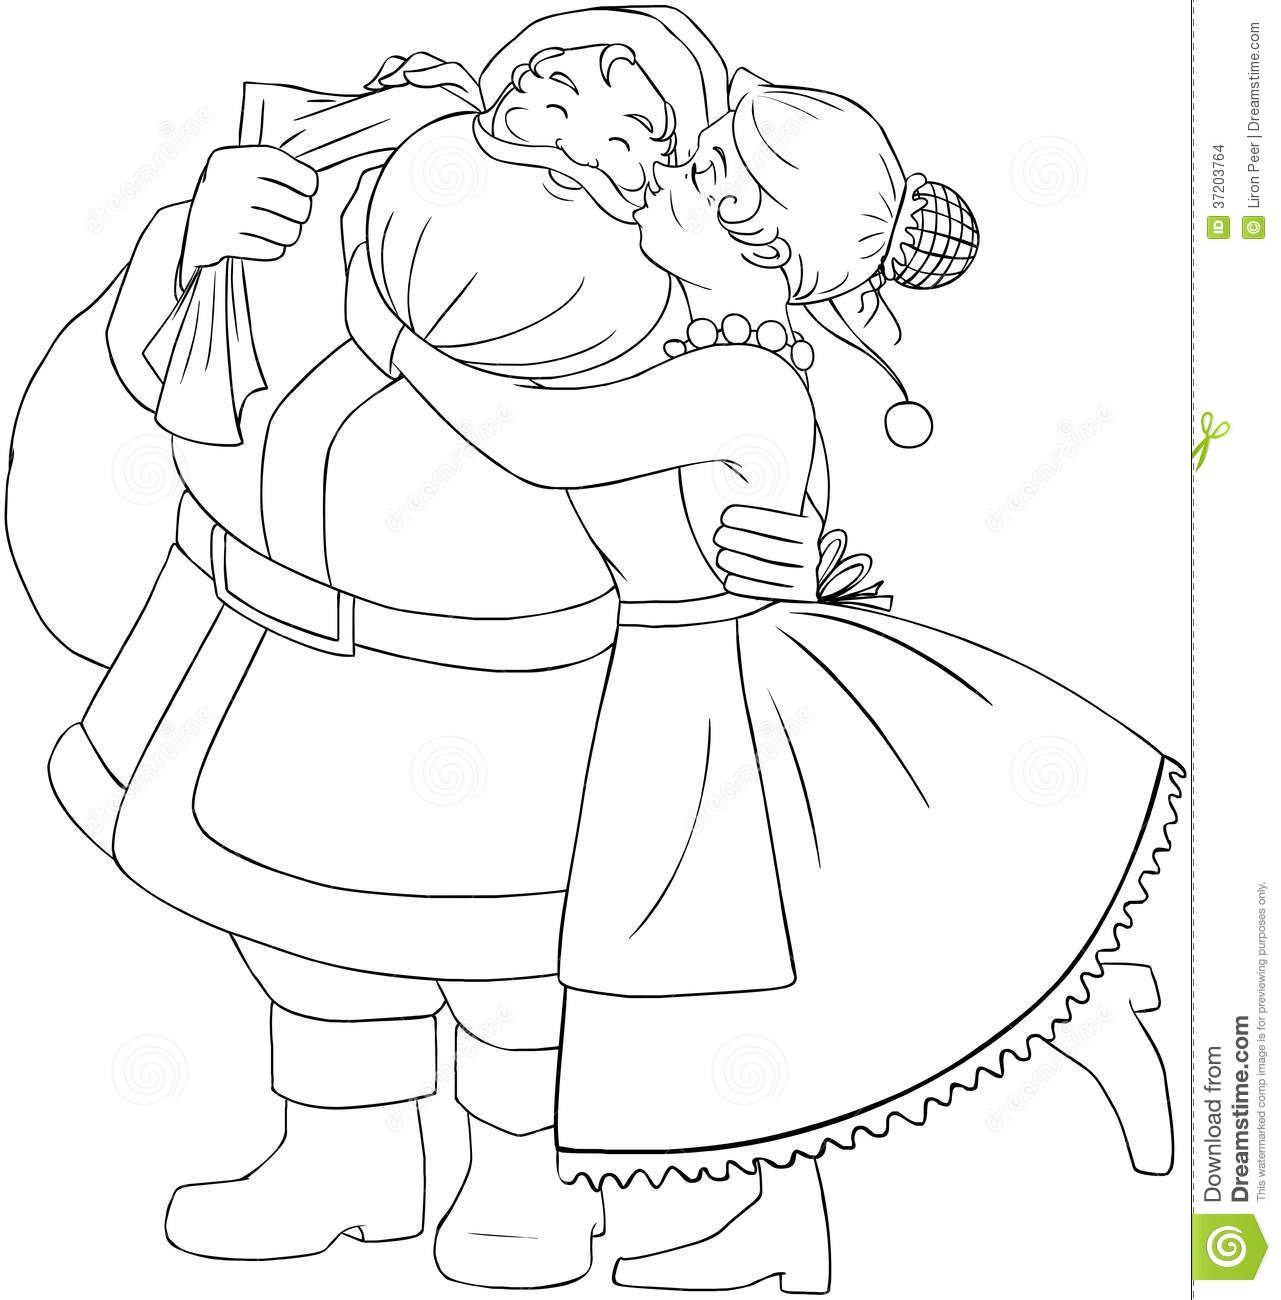 mrs claus kisses santa on cheek and hugs coloring stock images image